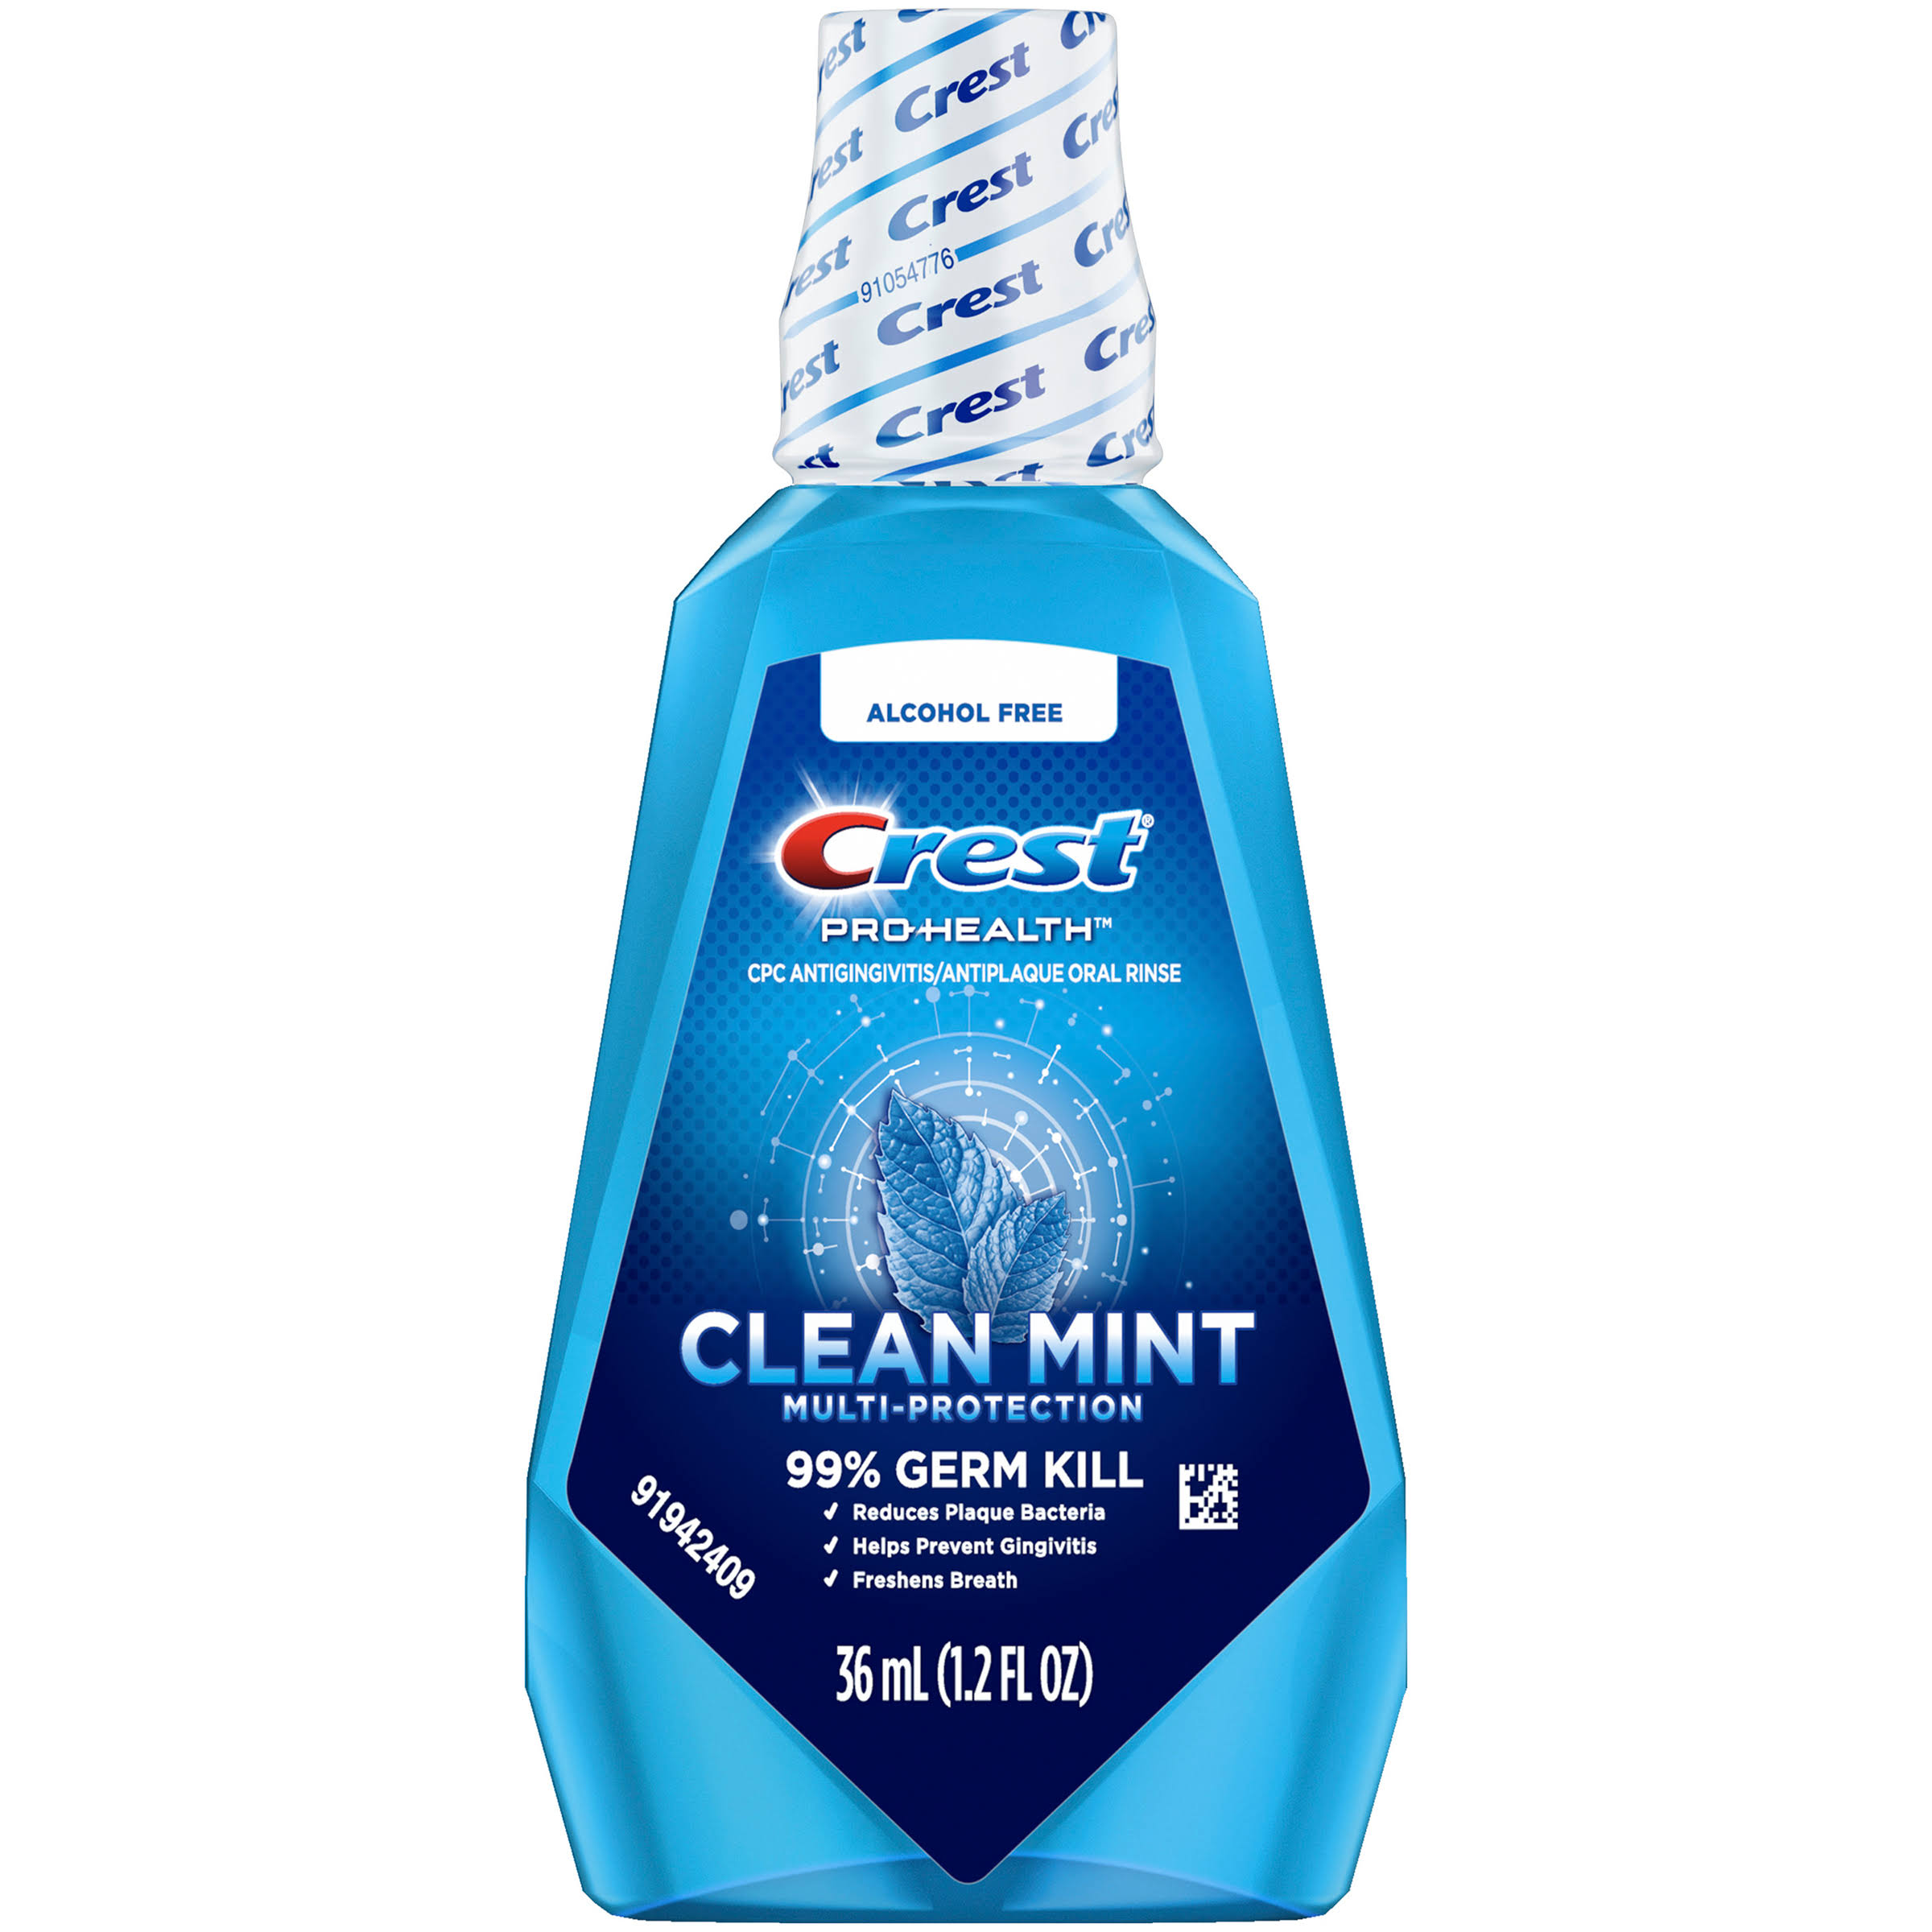 Crest Pro-Health Mouthwash - Refreshing Clean Mint, 36ml